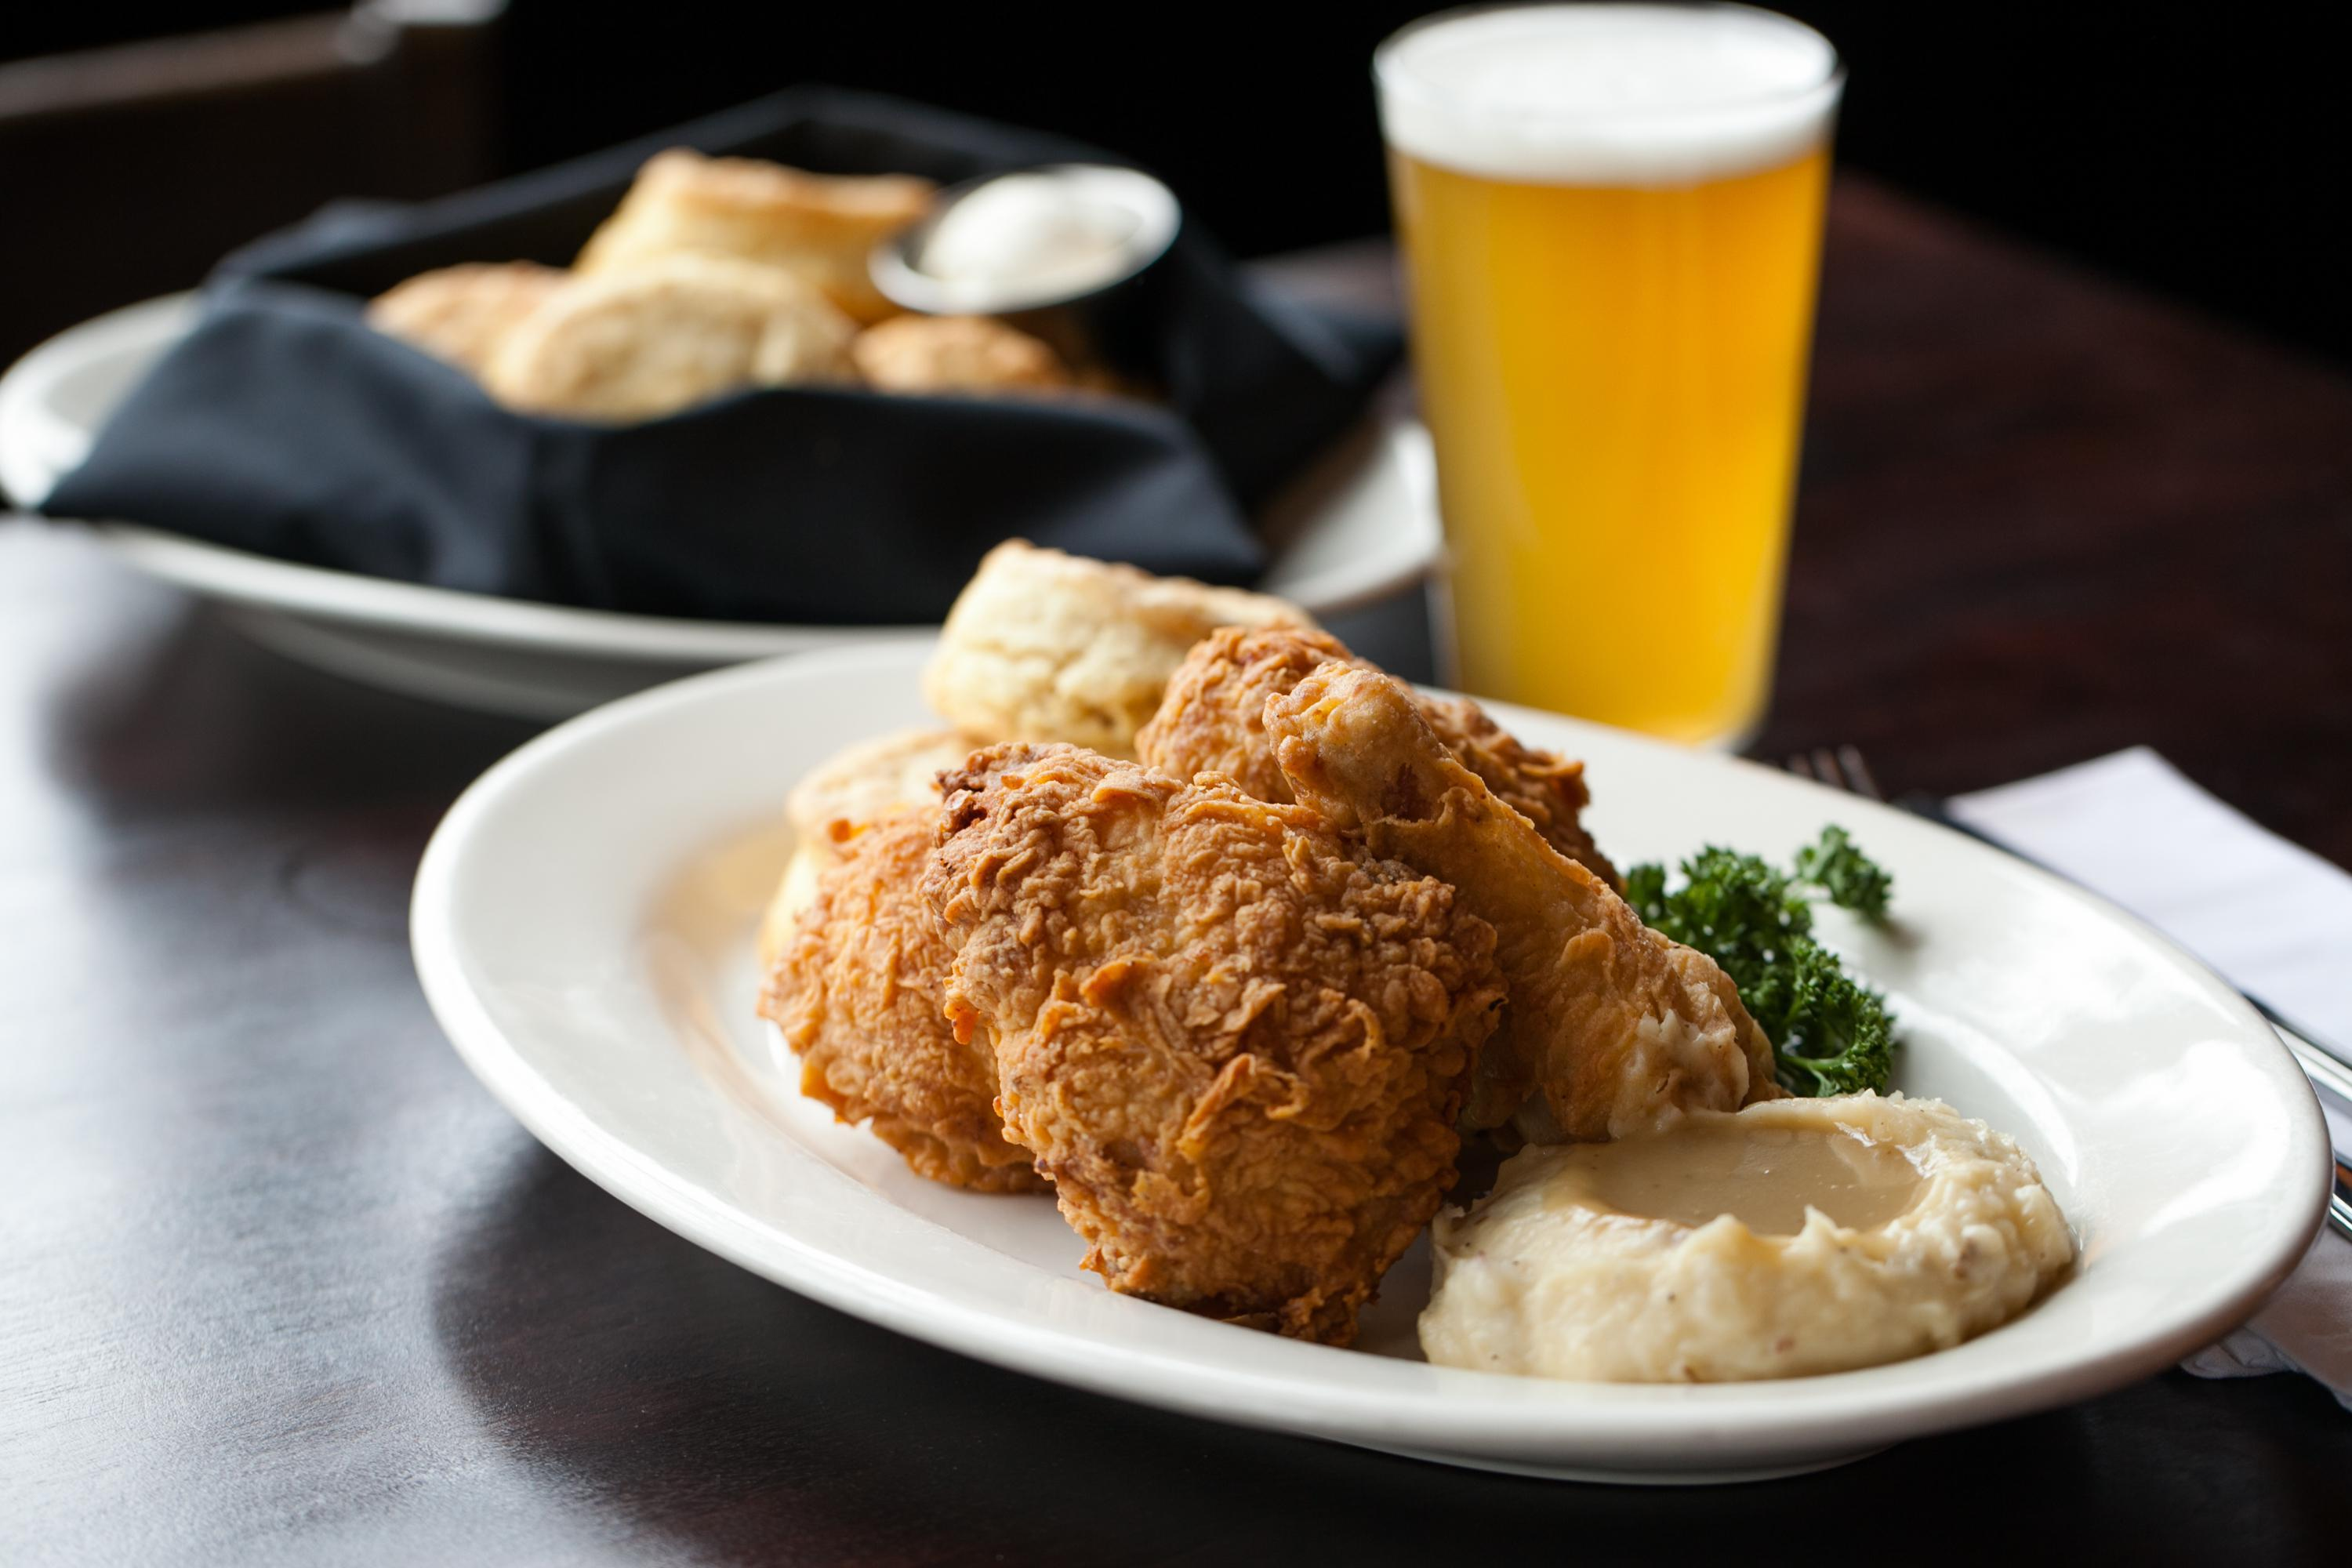 MONDAY: Southern Fried Chicken